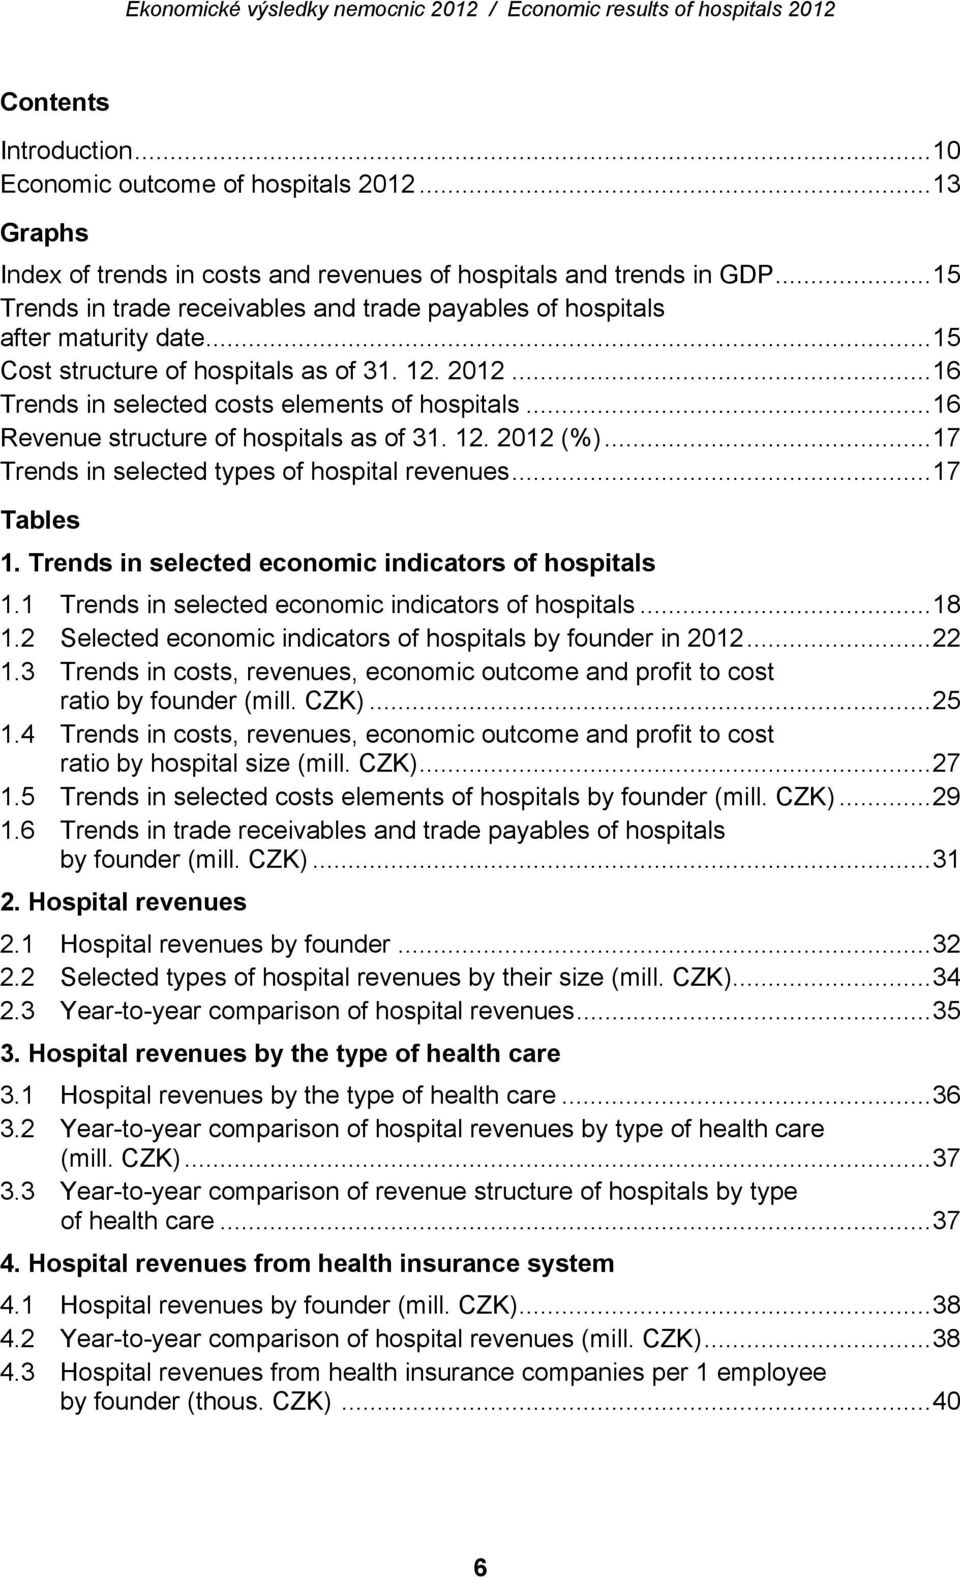 ..16 Revenue structure of hospitals as of 31. 12. 2012 (%)...17 Trends in selected types of hospital revenues...17 Tables 1. Trends in selected economic indicators of hospitals 1.